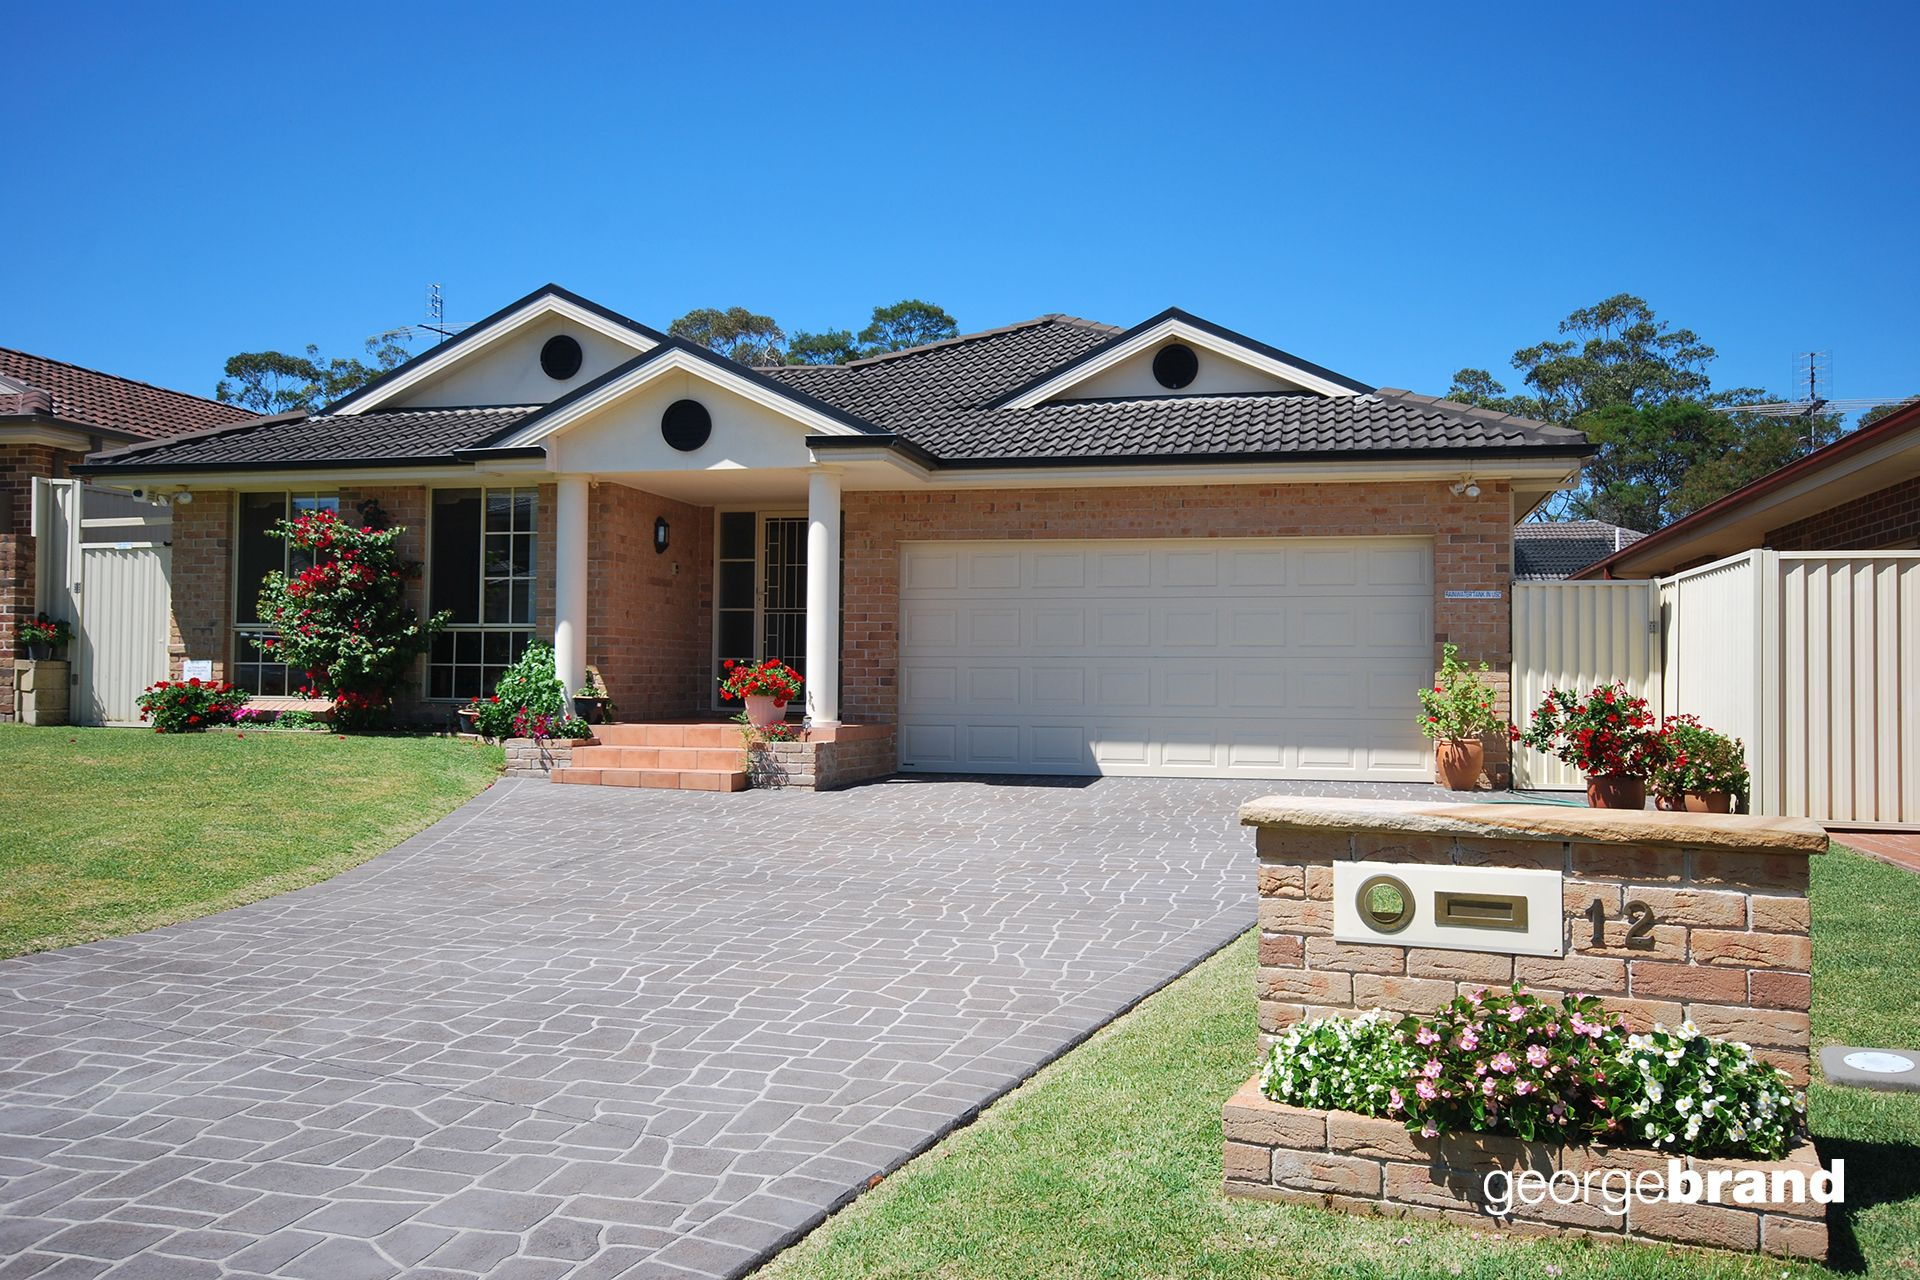 Kariong Real Estate: IT'S PERFECT!